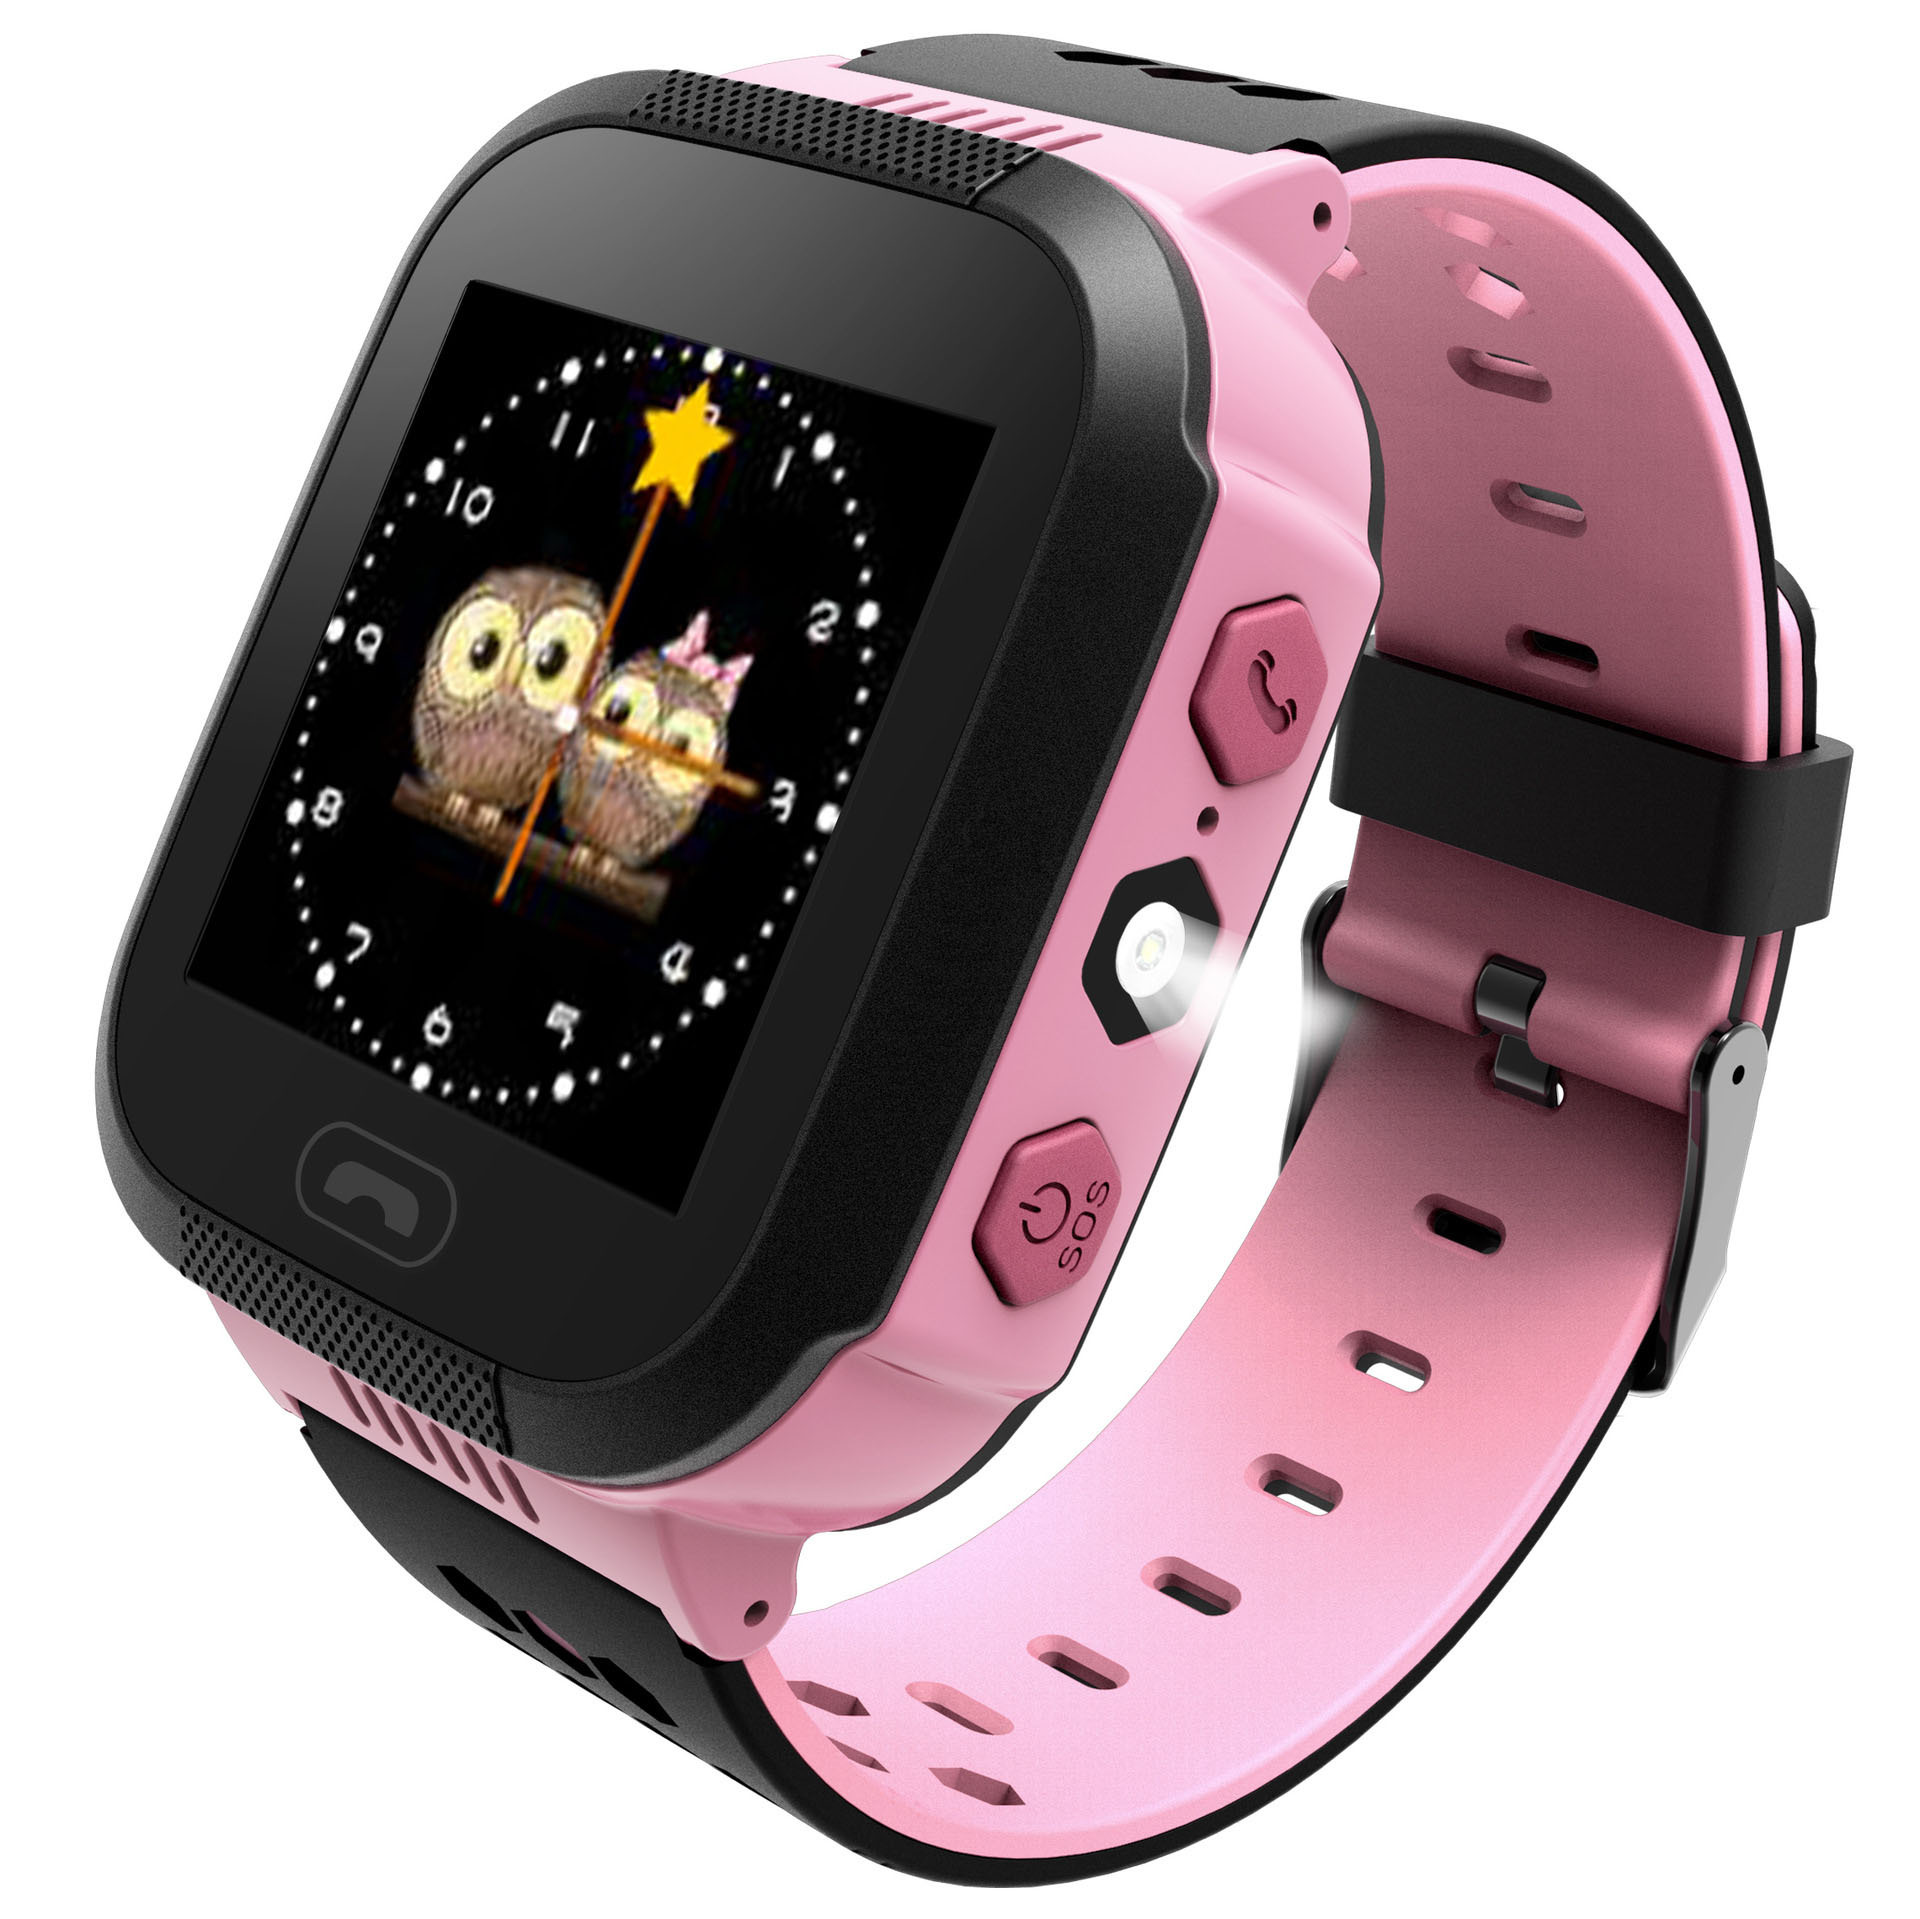 LIGE Kid Smartwatch for Sim card Children 39 s watch With Bluetooth HD camera LBS tracker SOS call Security warning Kid Smart Watch in Smart Watches from Consumer Electronics